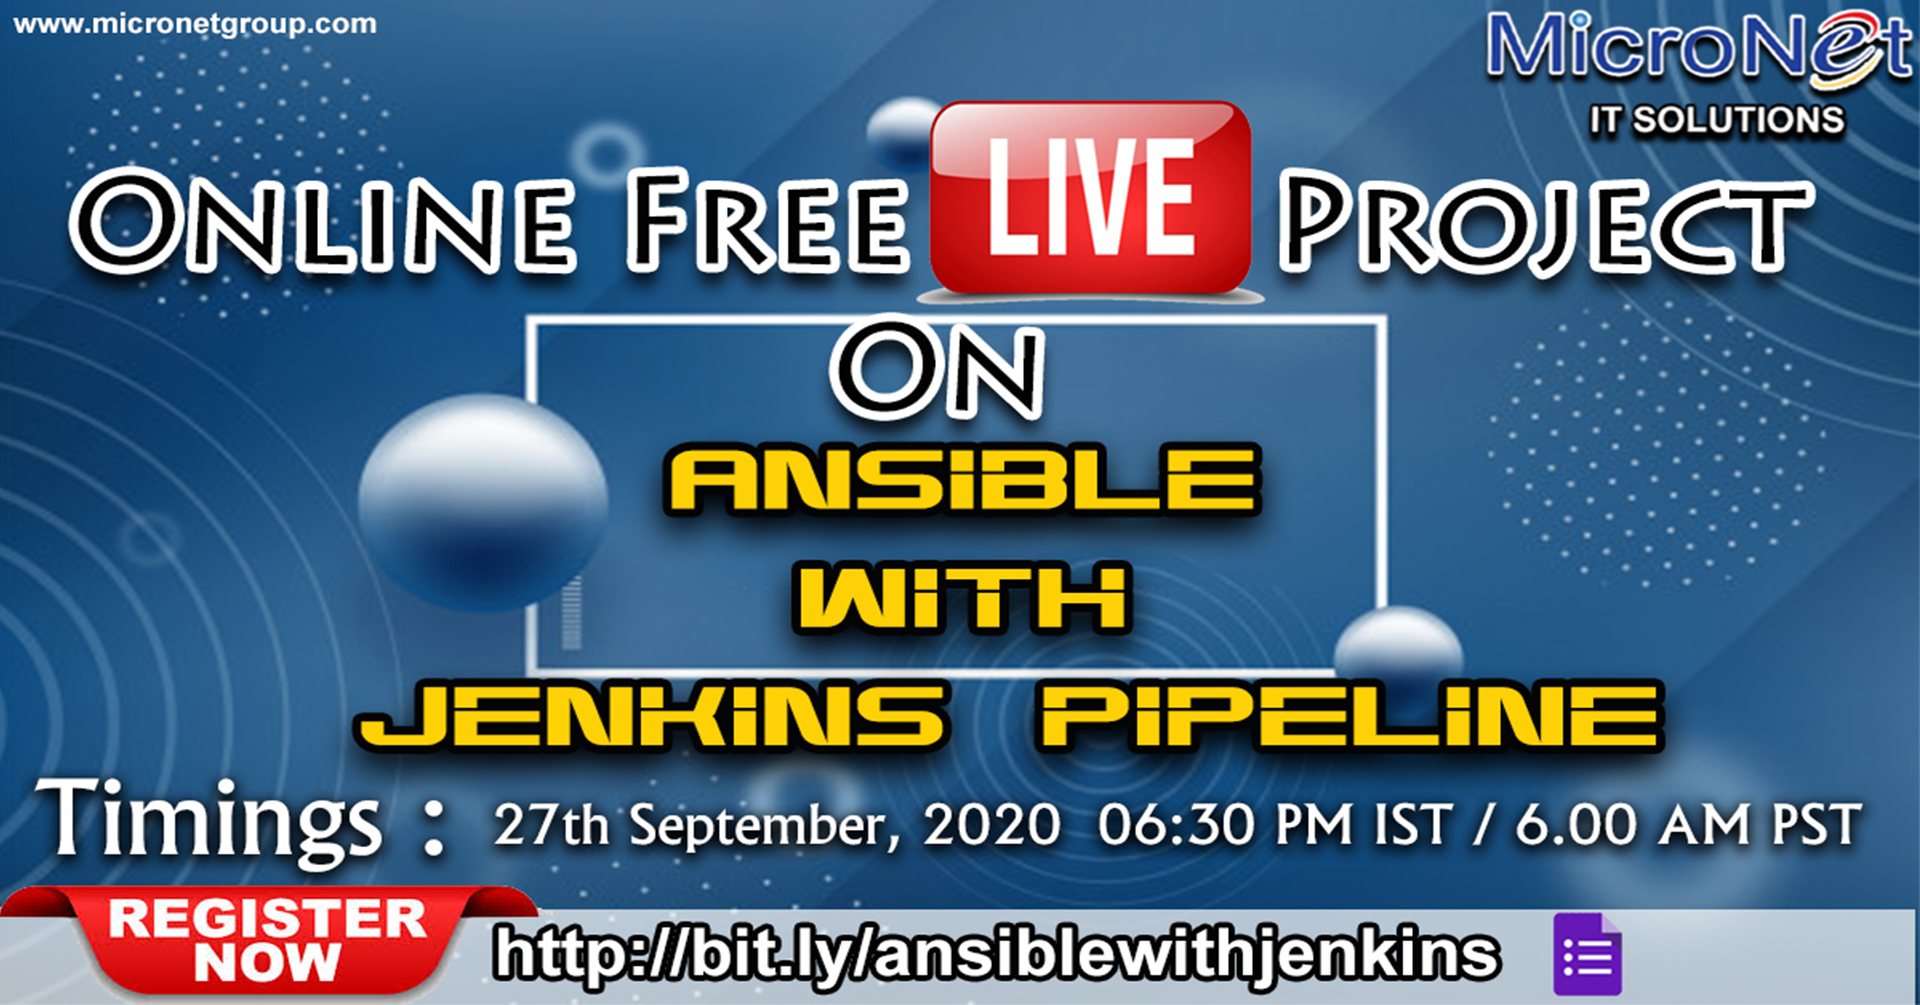 Online Free Live Project On Ansible with Jenkins Pipeline